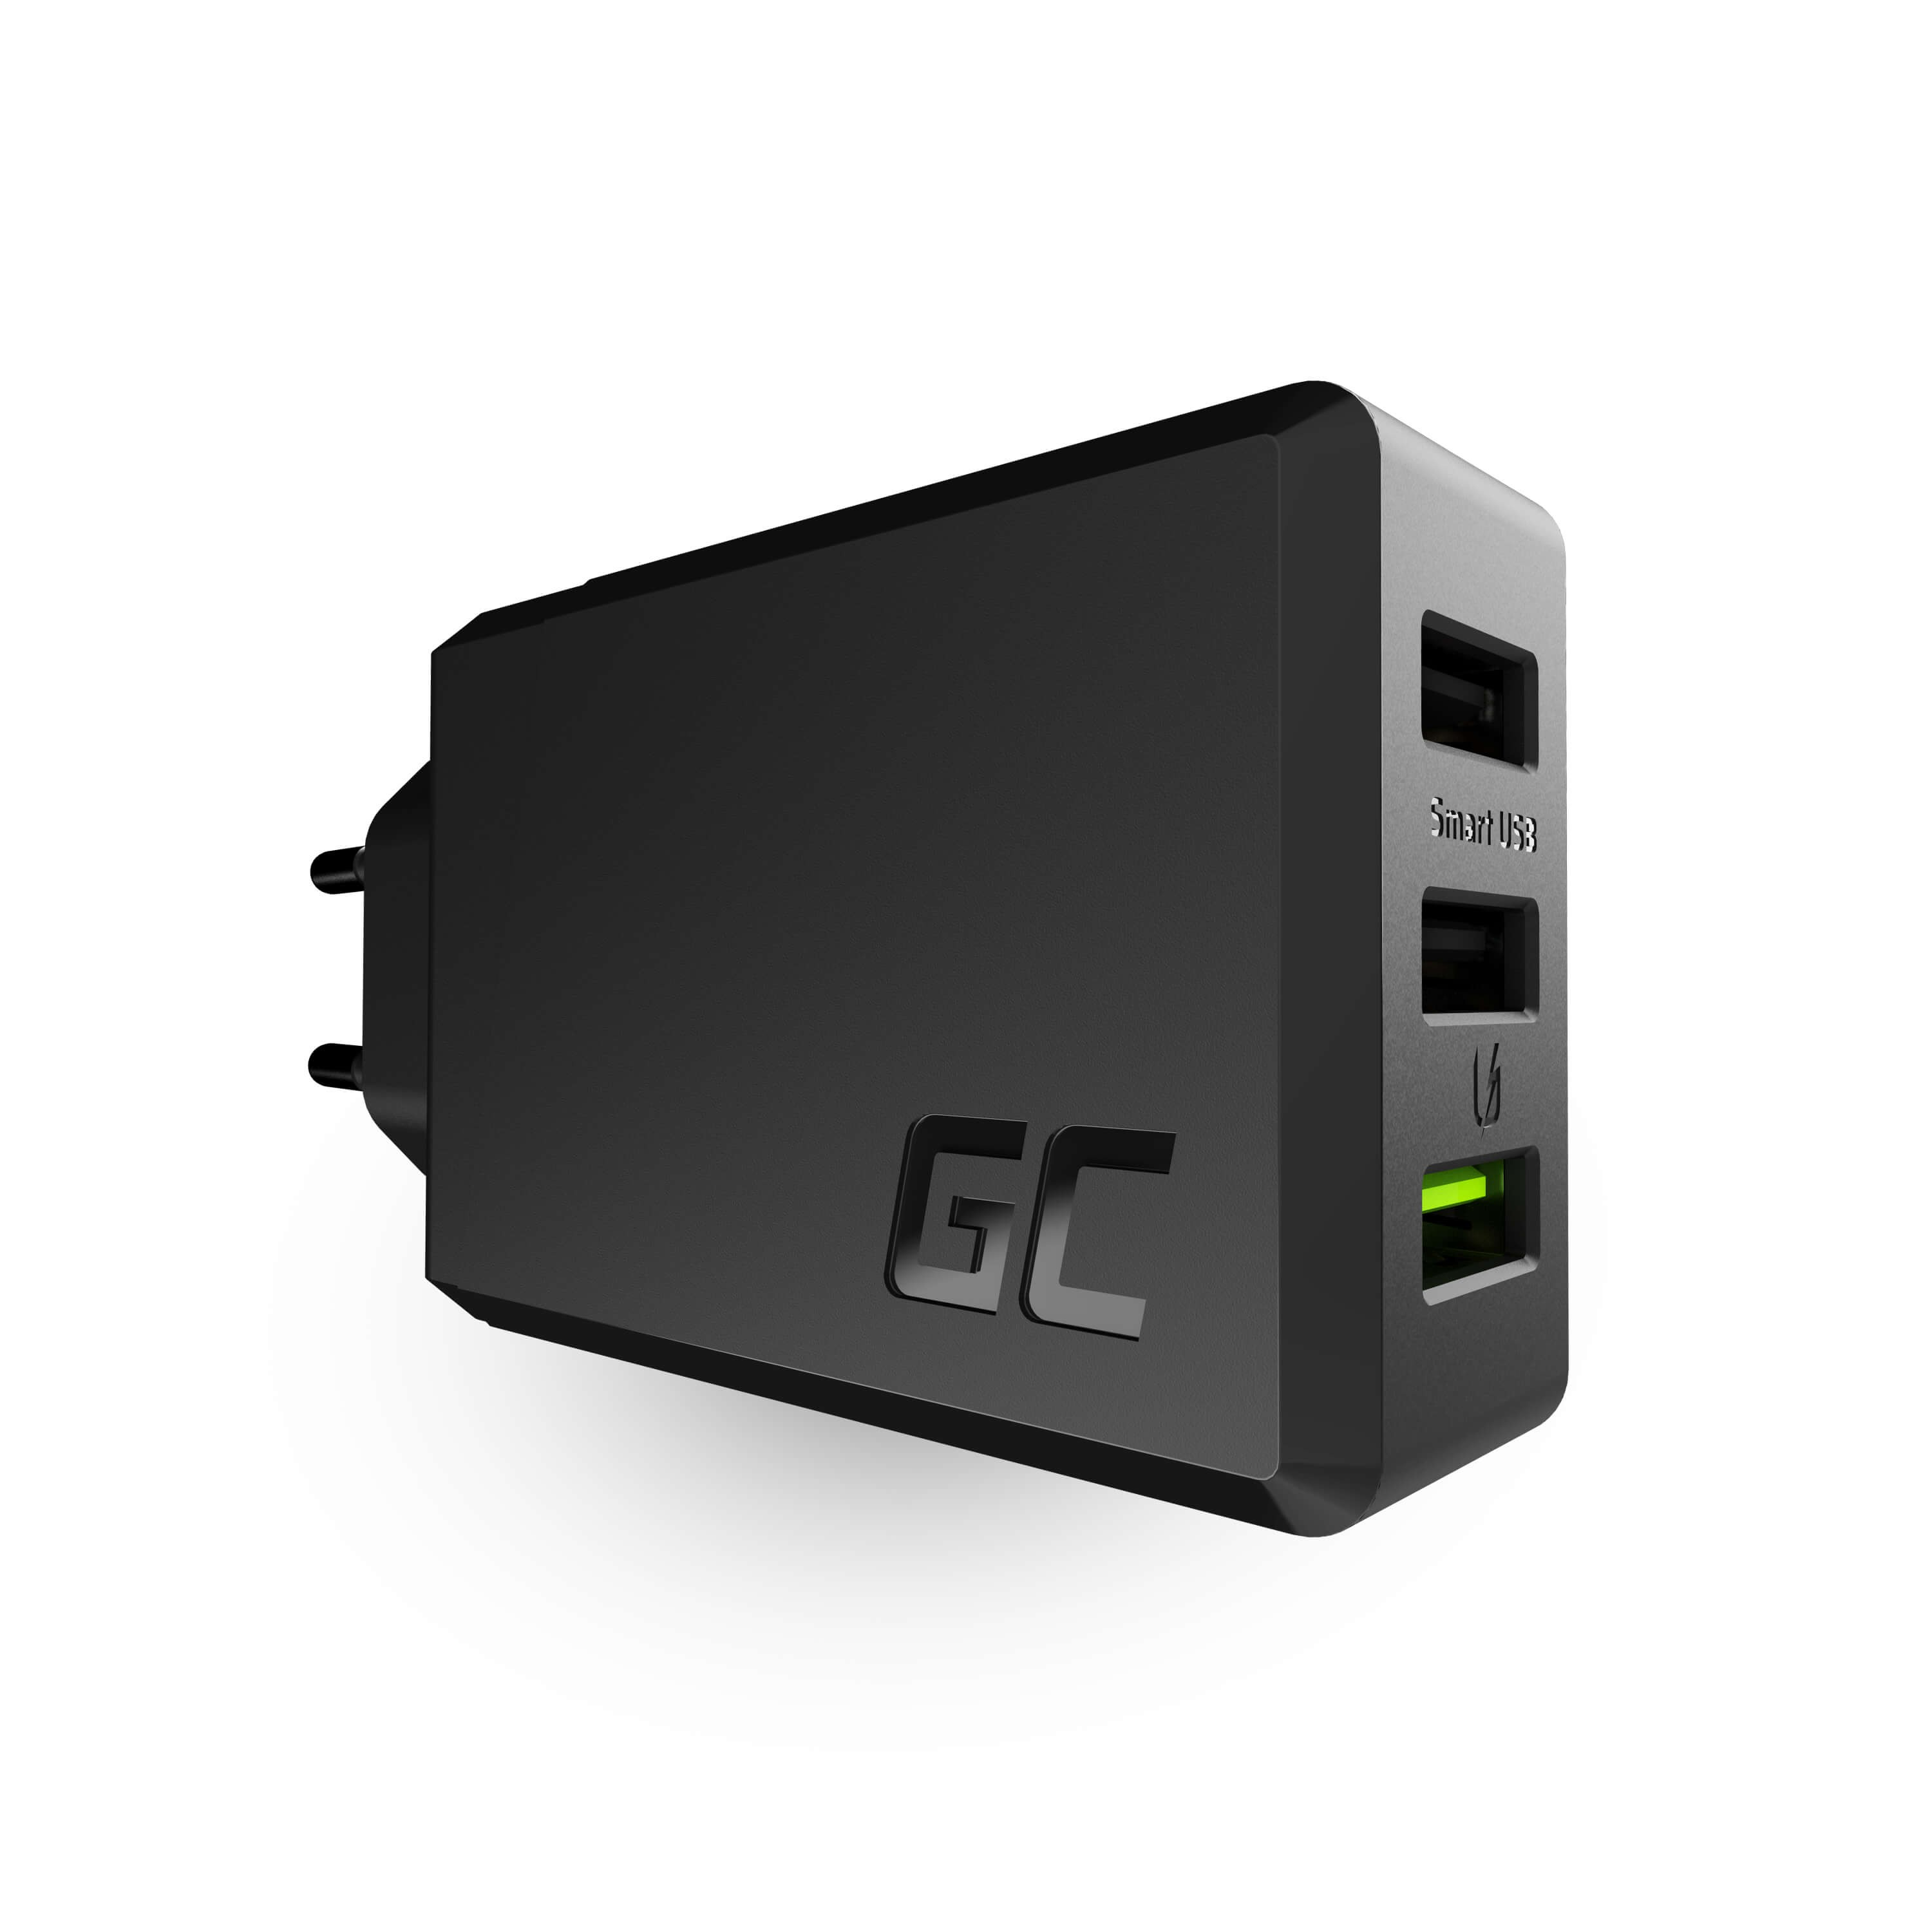 3-portars laddare GC ChargeSource3 3xUSB 30W med snabbladdning UltraCharging i Smart Charge